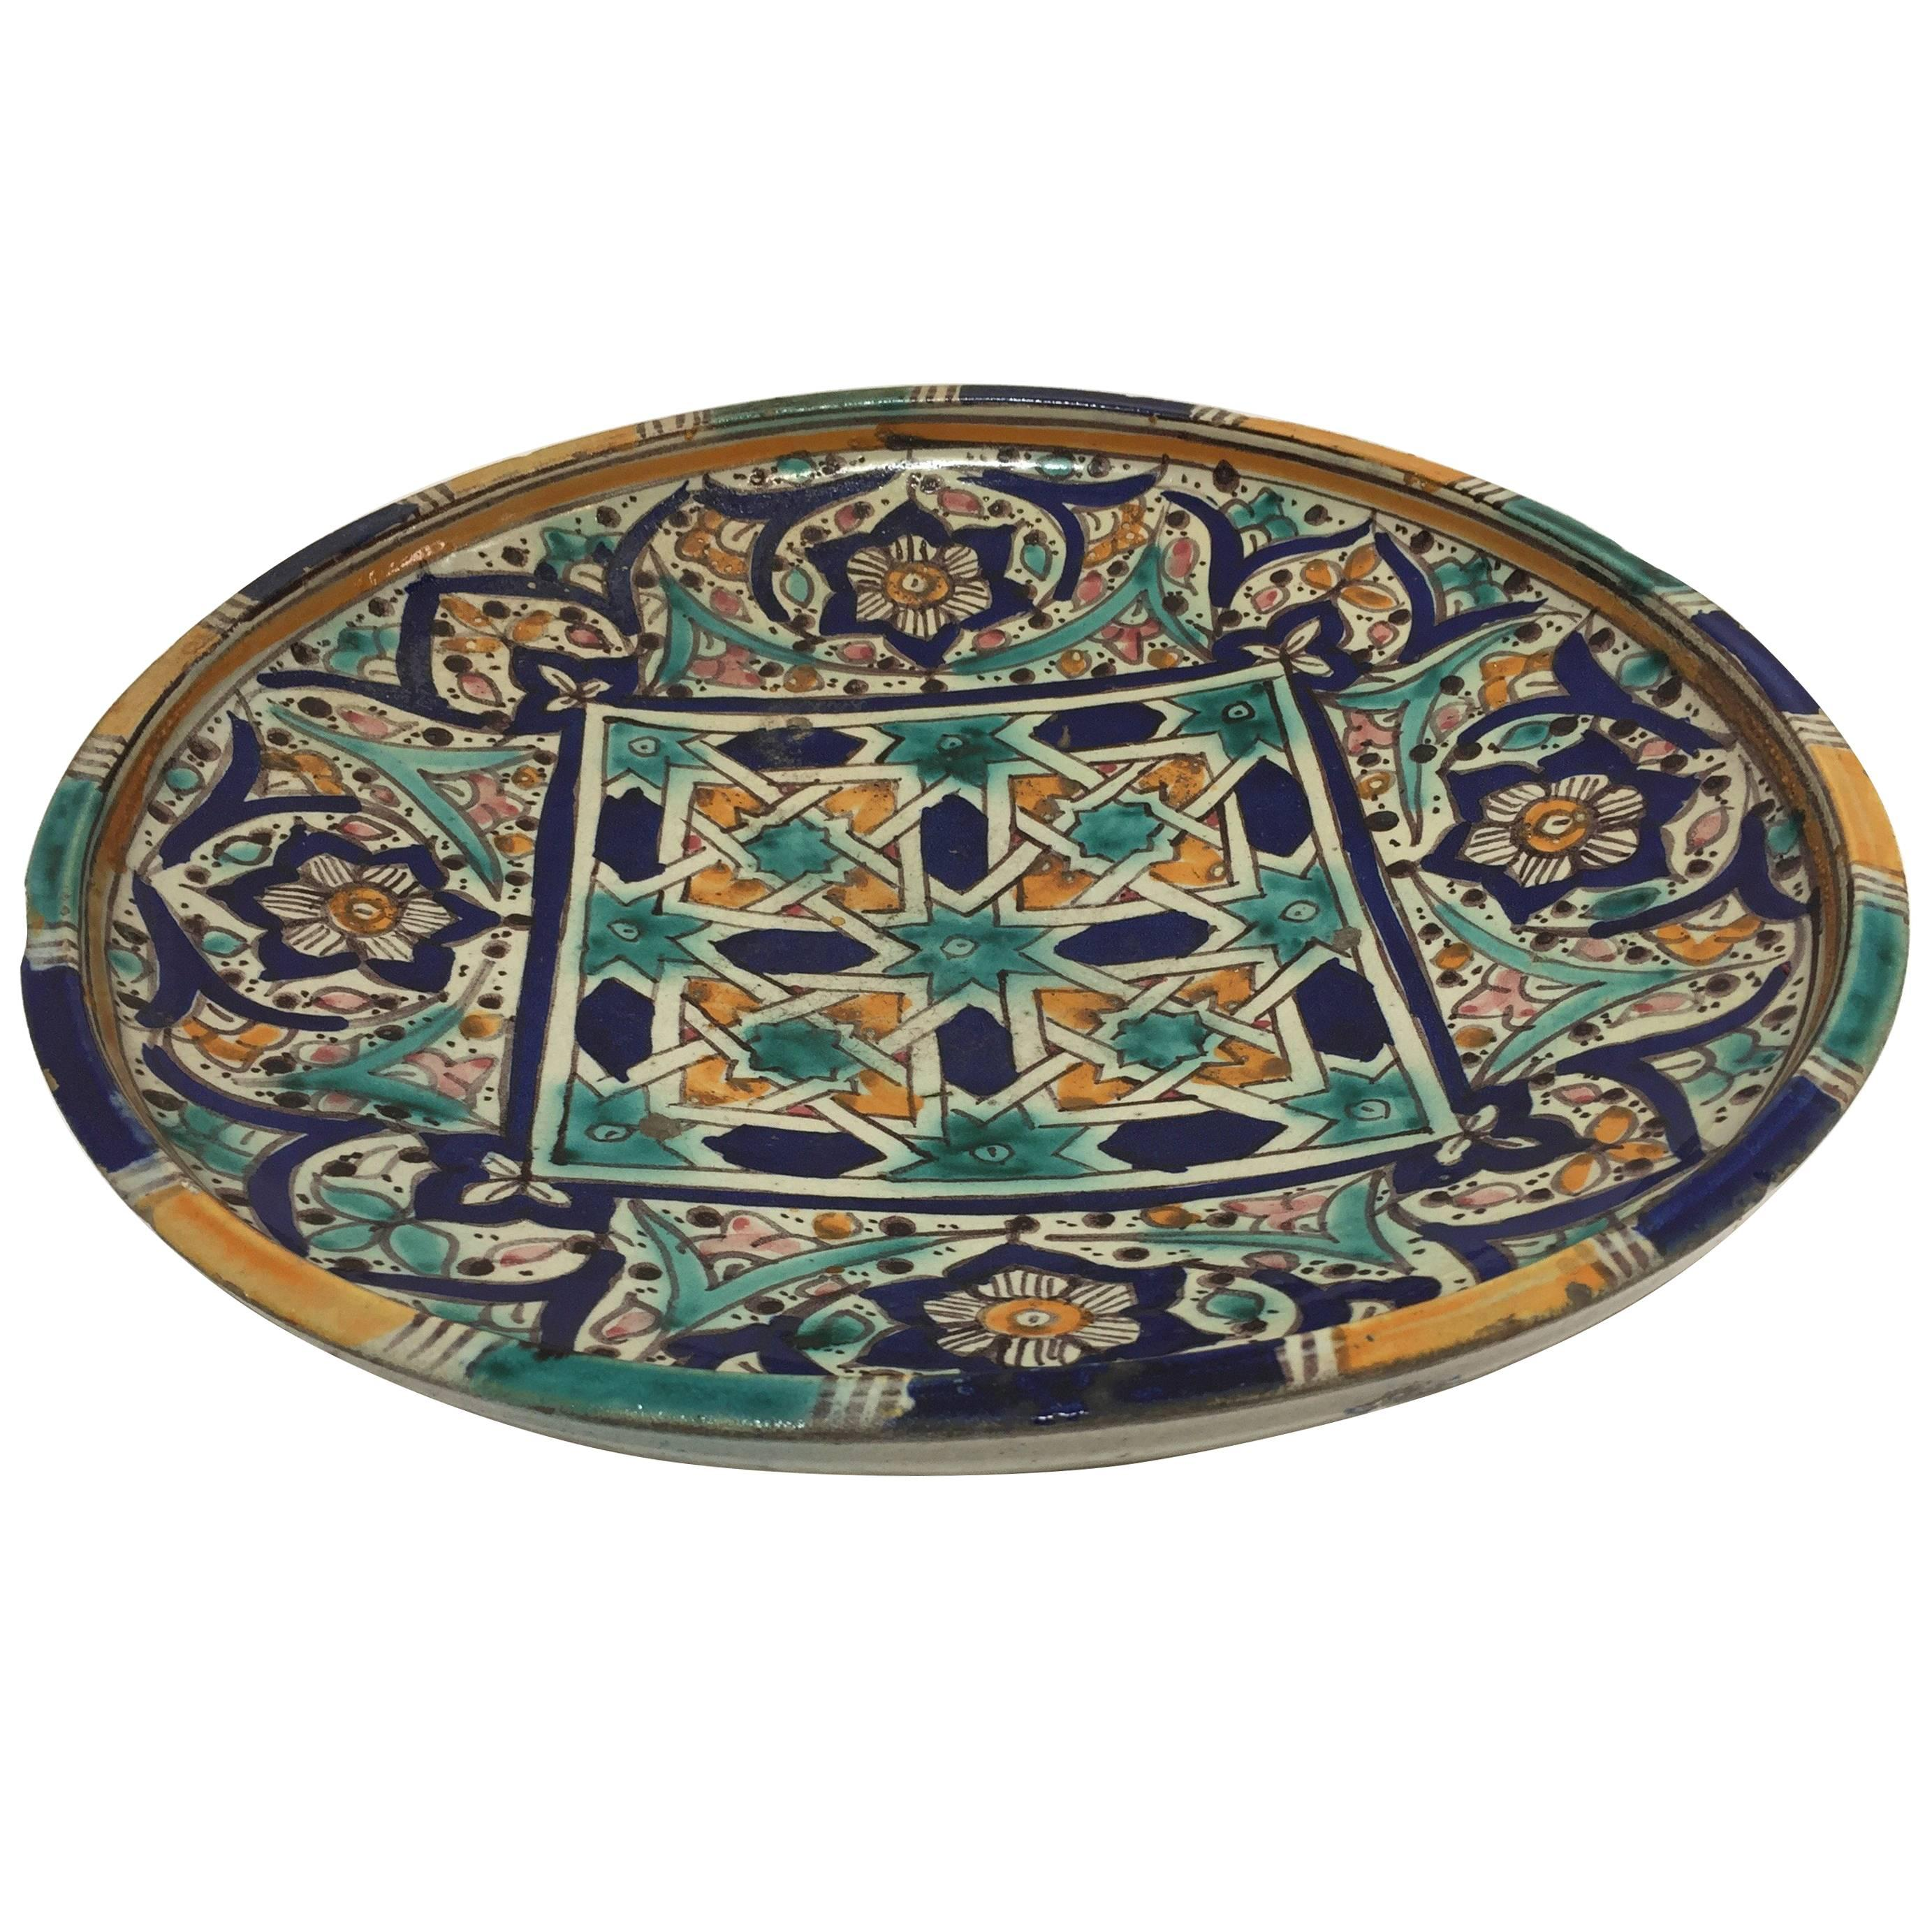 Hand-Painted and Handcrafted Moroccan Ceramic Bowl or Wall Art Decorative Plate For Sale  sc 1 st  1stDibs & Hand-Painted and Handcrafted Moroccan Ceramic Bowl or Wall Art ...